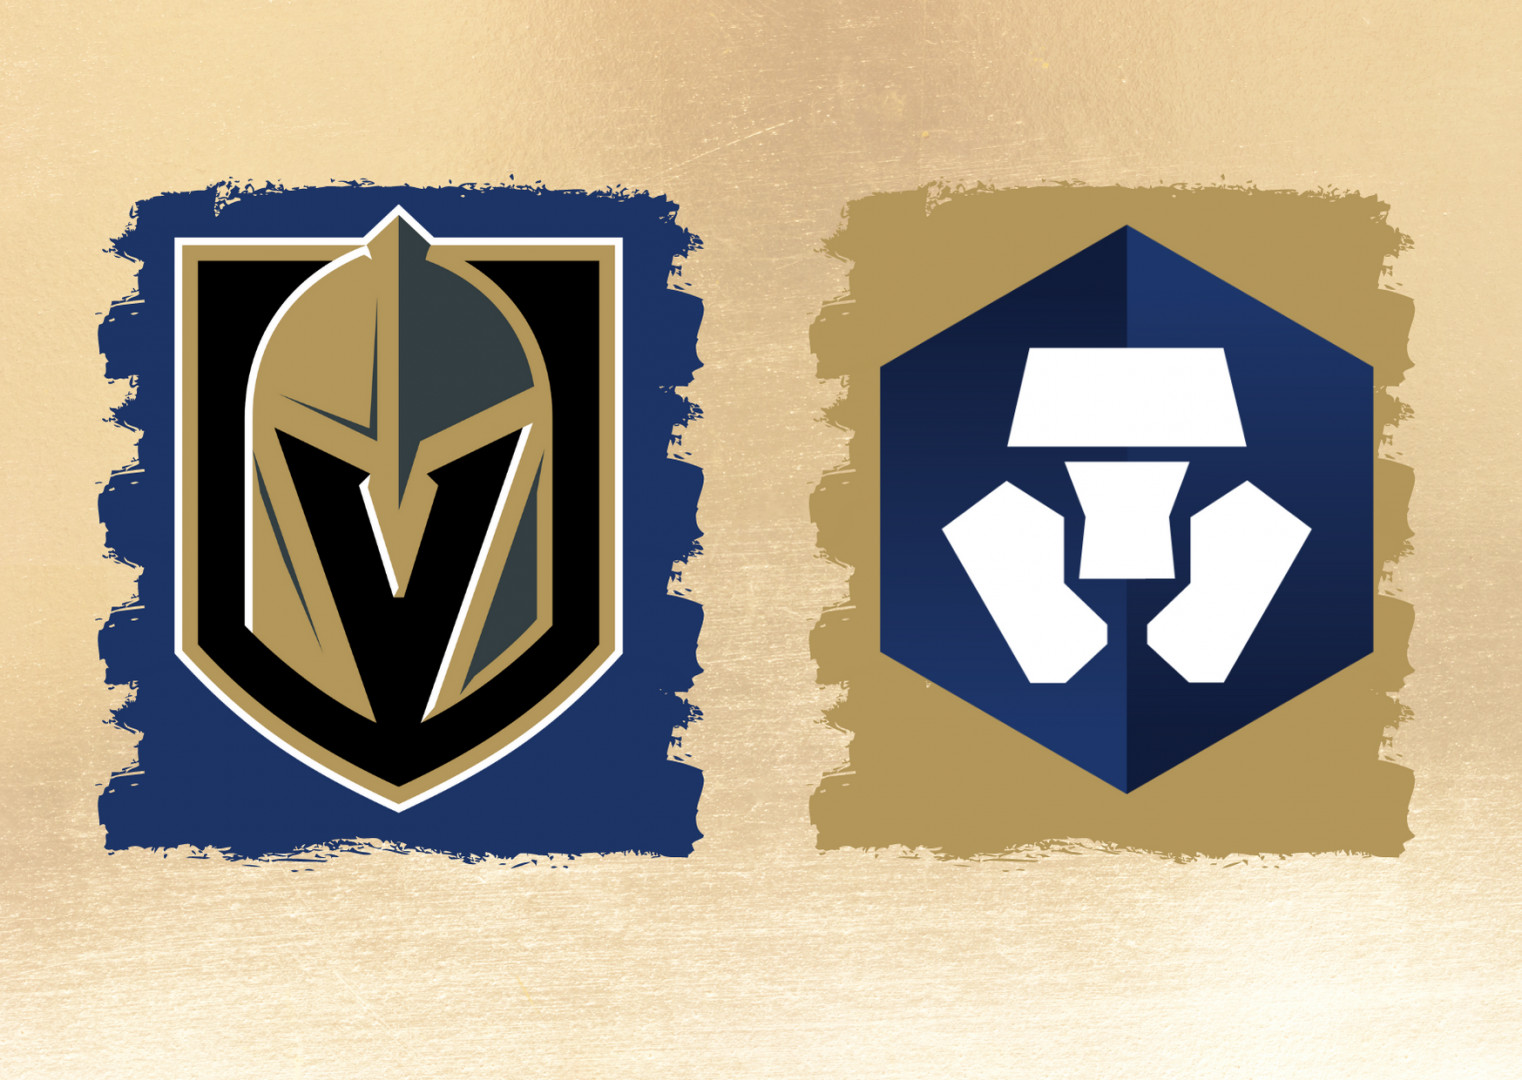 VEGAS GOLDEN KNIGHTS LAUNCH FIRST SERIES OF COLLECTIBLE NFTs FEATURING UNIQUE VGK-THEMED DESIGNS AND PREMIUM REDEEMABLES